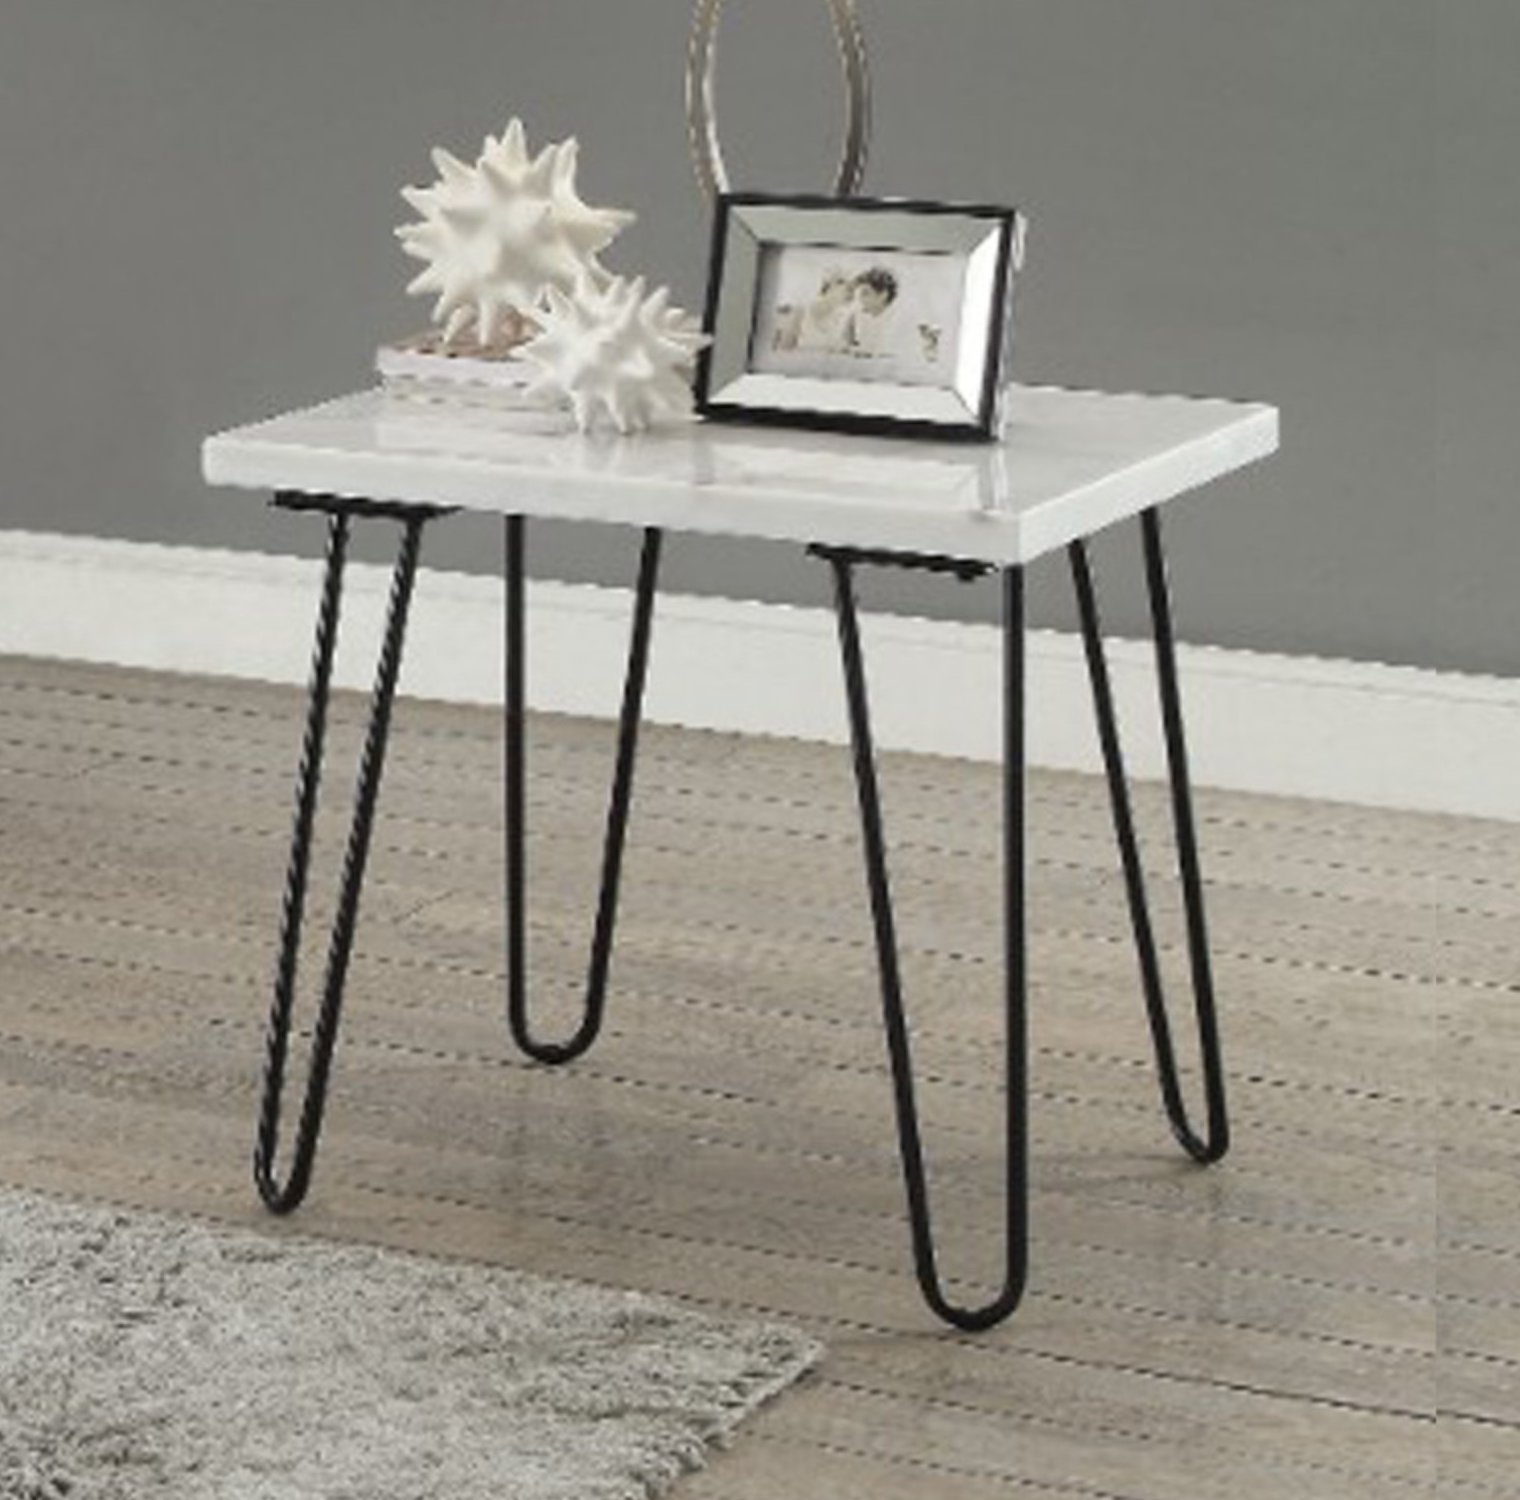 brayden studio neihart black marble top end table with metal hairpin style legs gold room essentials accent easy christmas runner patterns free outdoor small side pottery barn